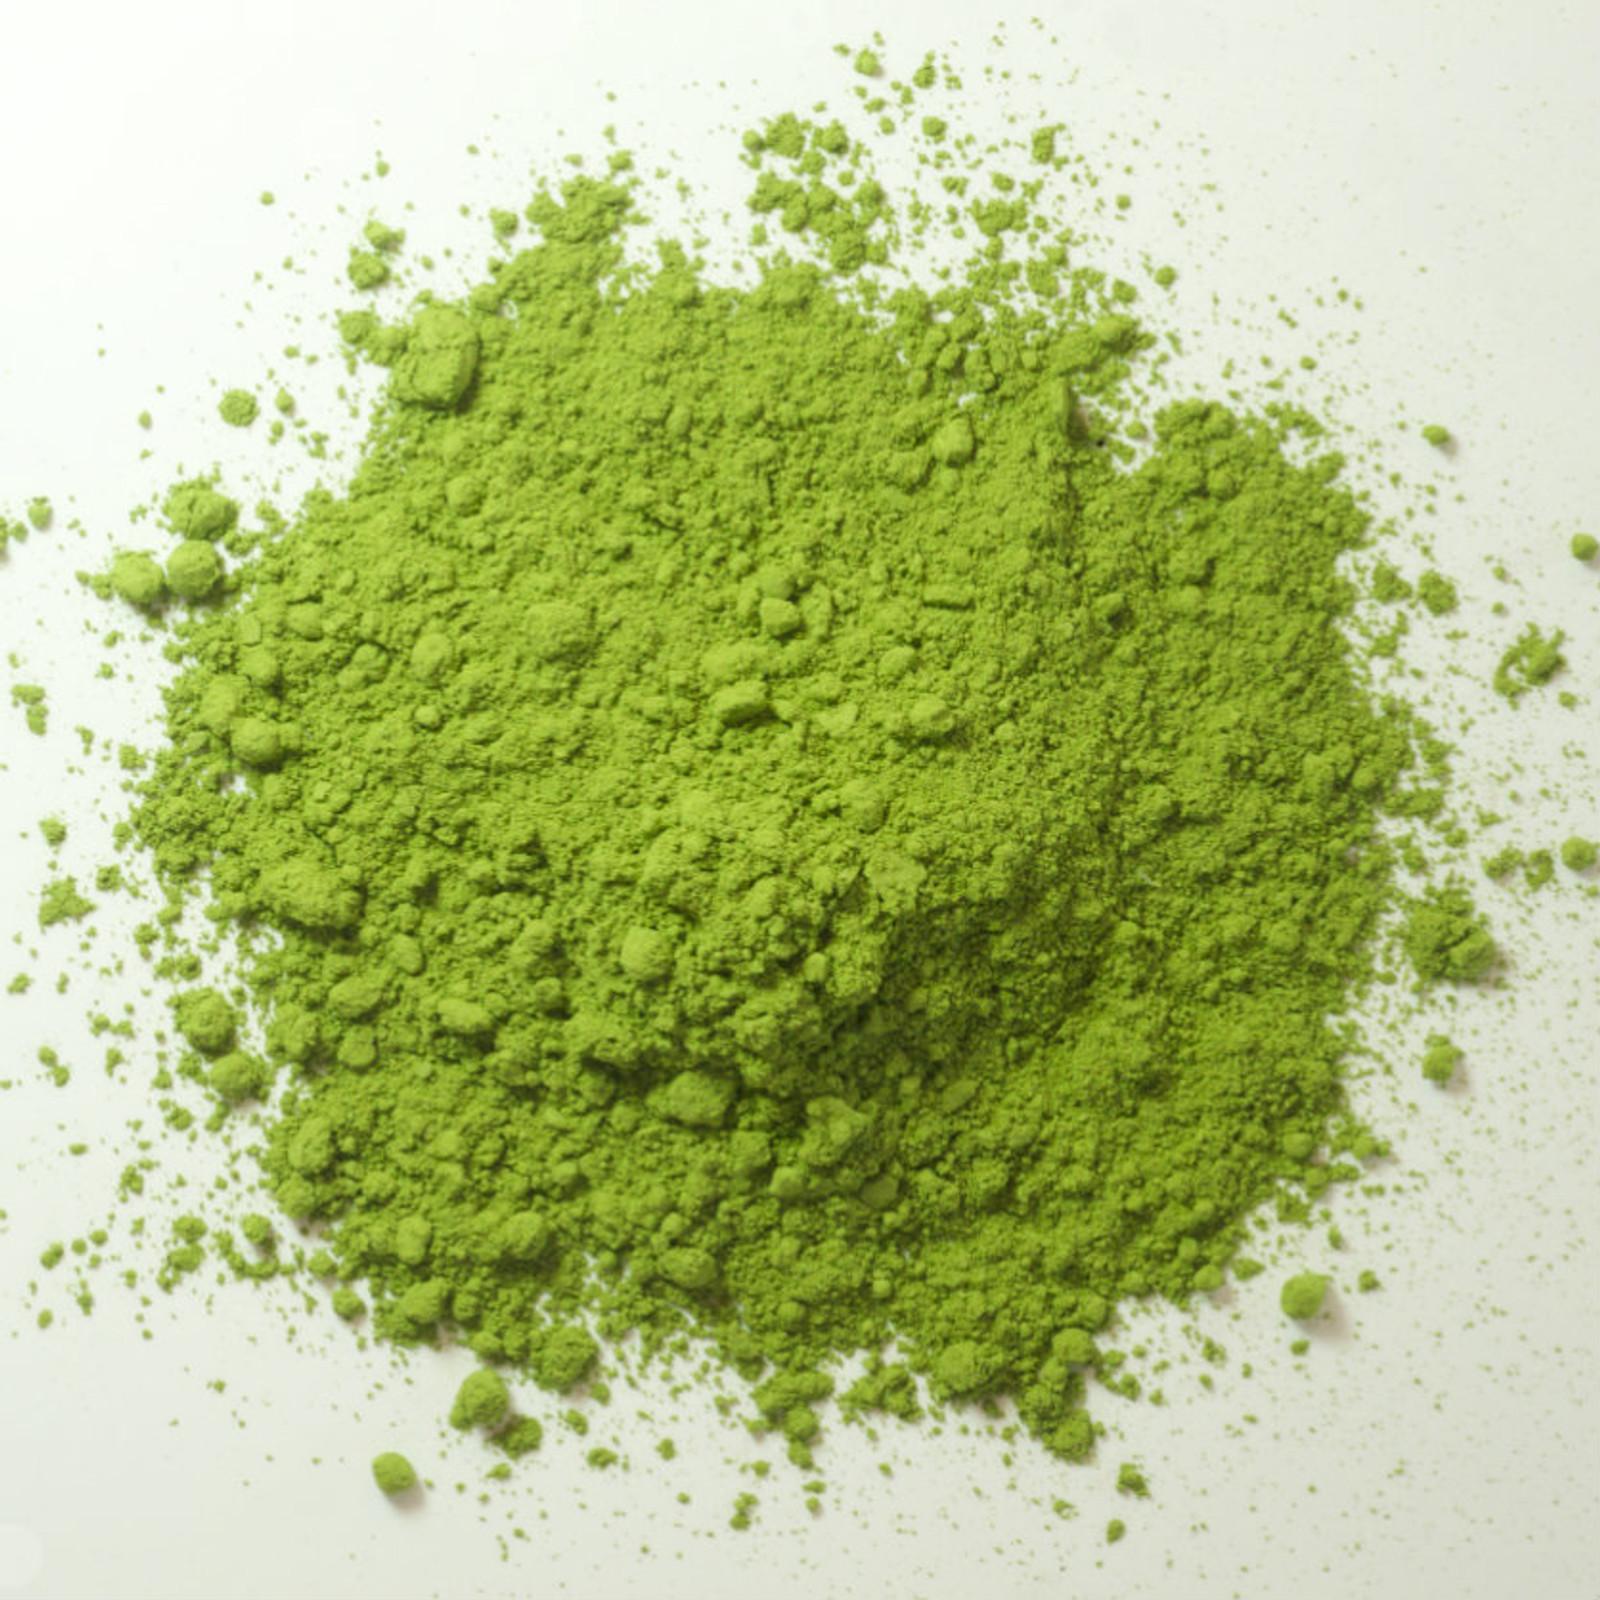 Matcha powder, pure concentrated green tea leaves